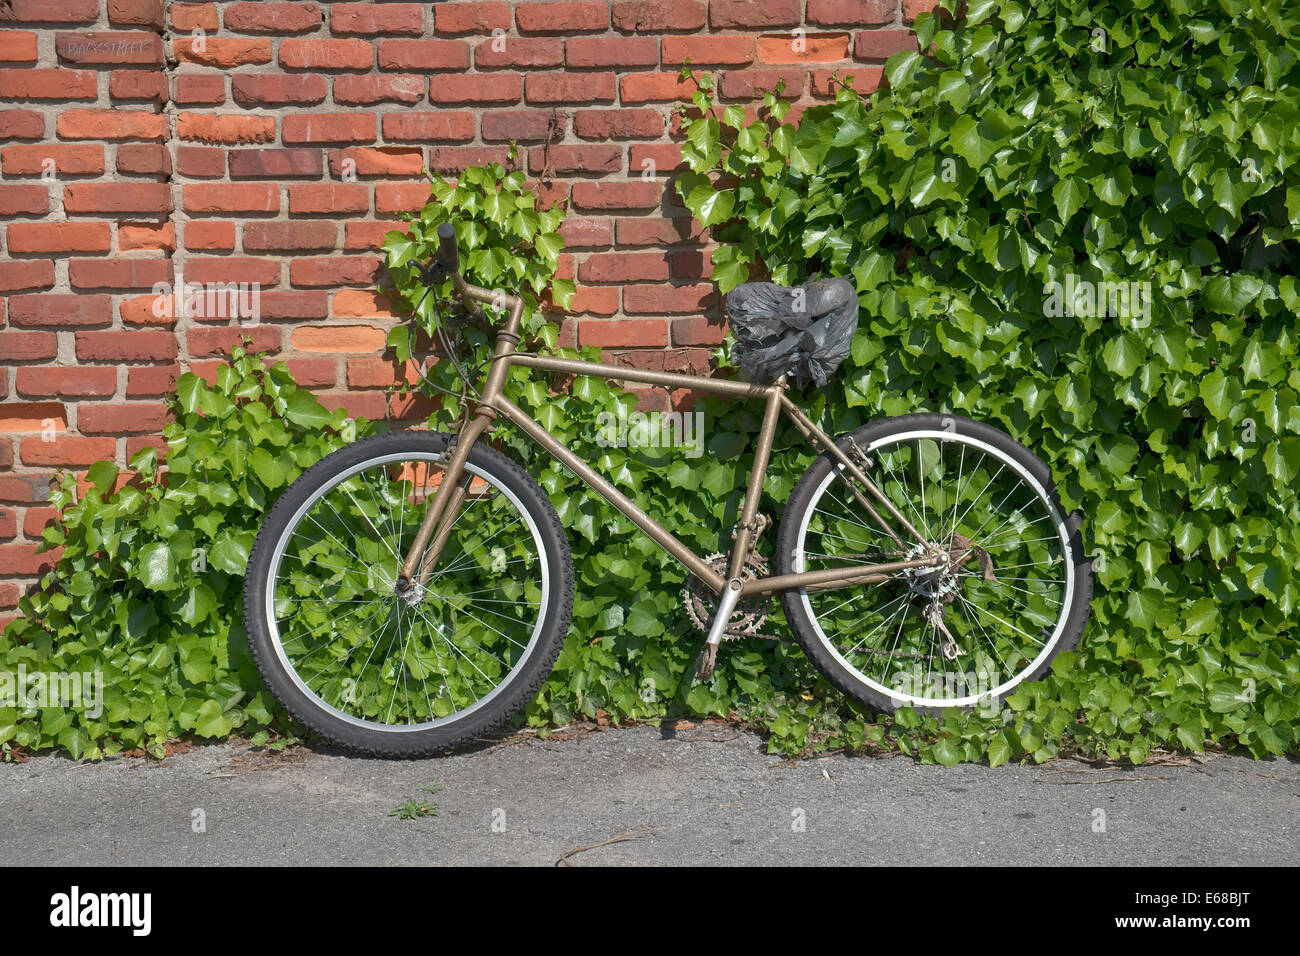 old bike leaning against brick wall with vines growing up it. - Stock Image